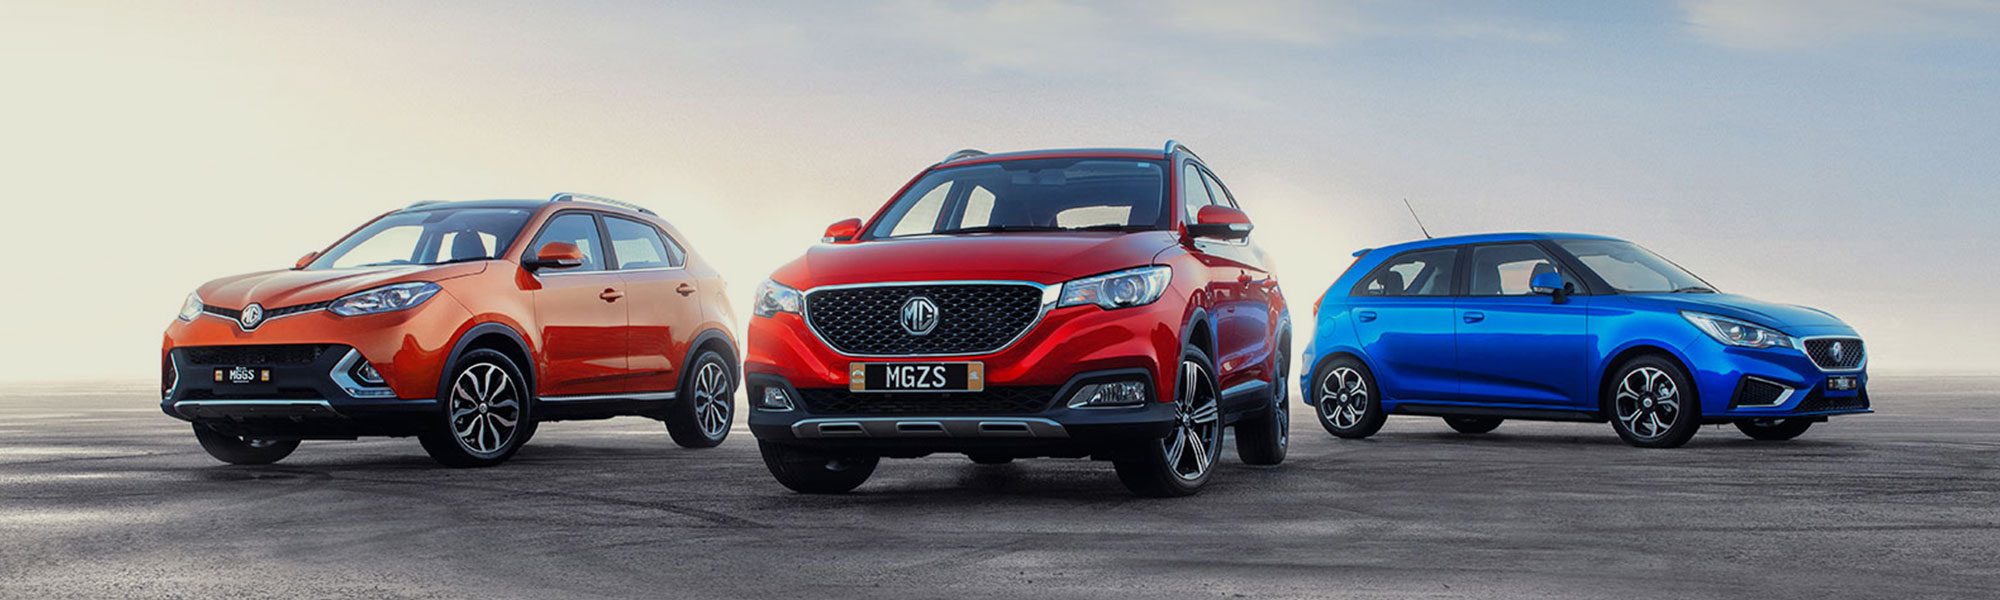 MG Motor appoints first New Zealand dealer partners